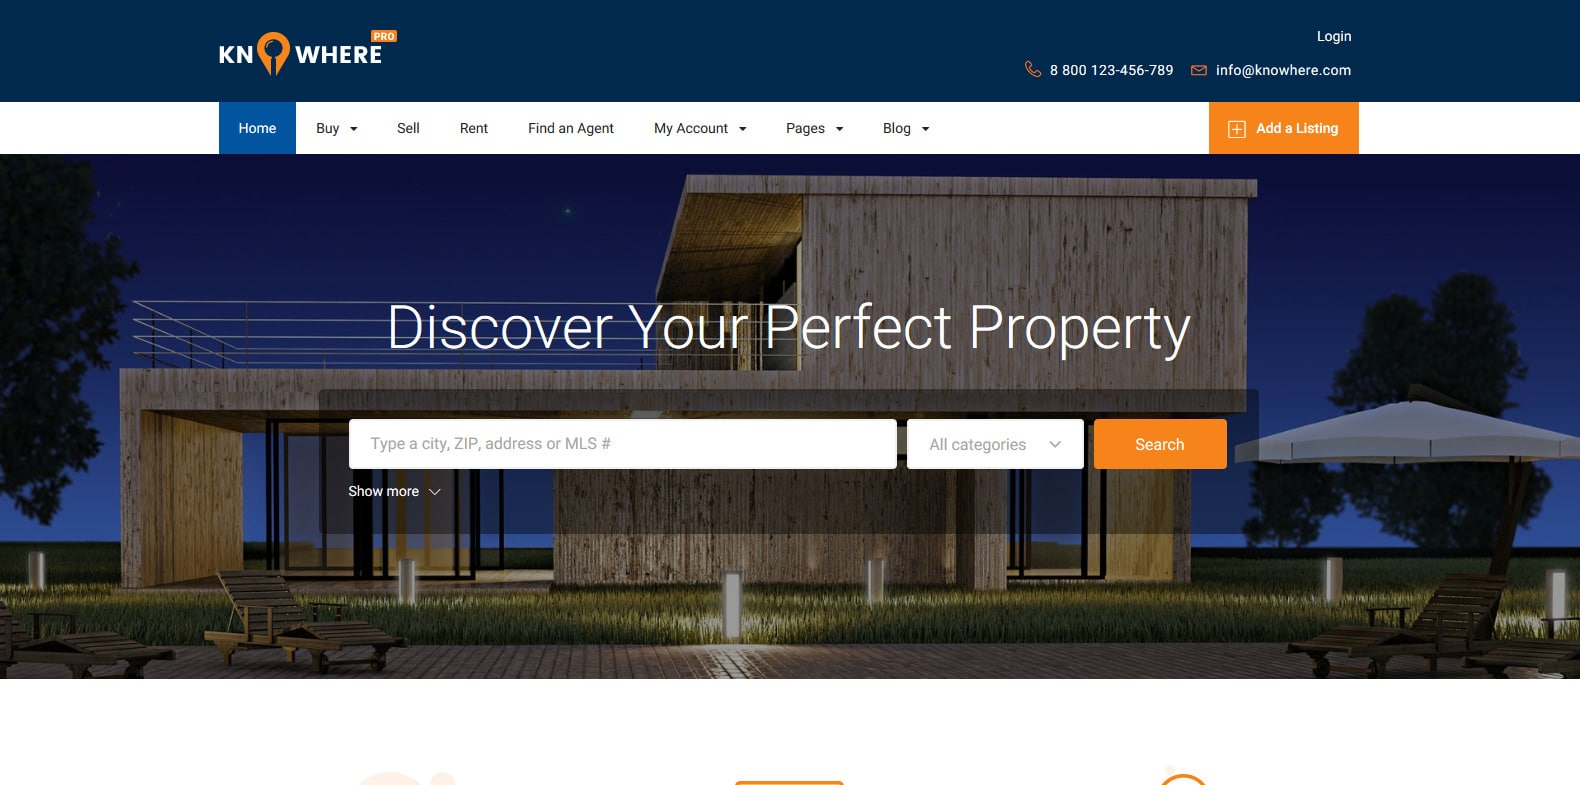 knowhere-property-management-websote-template